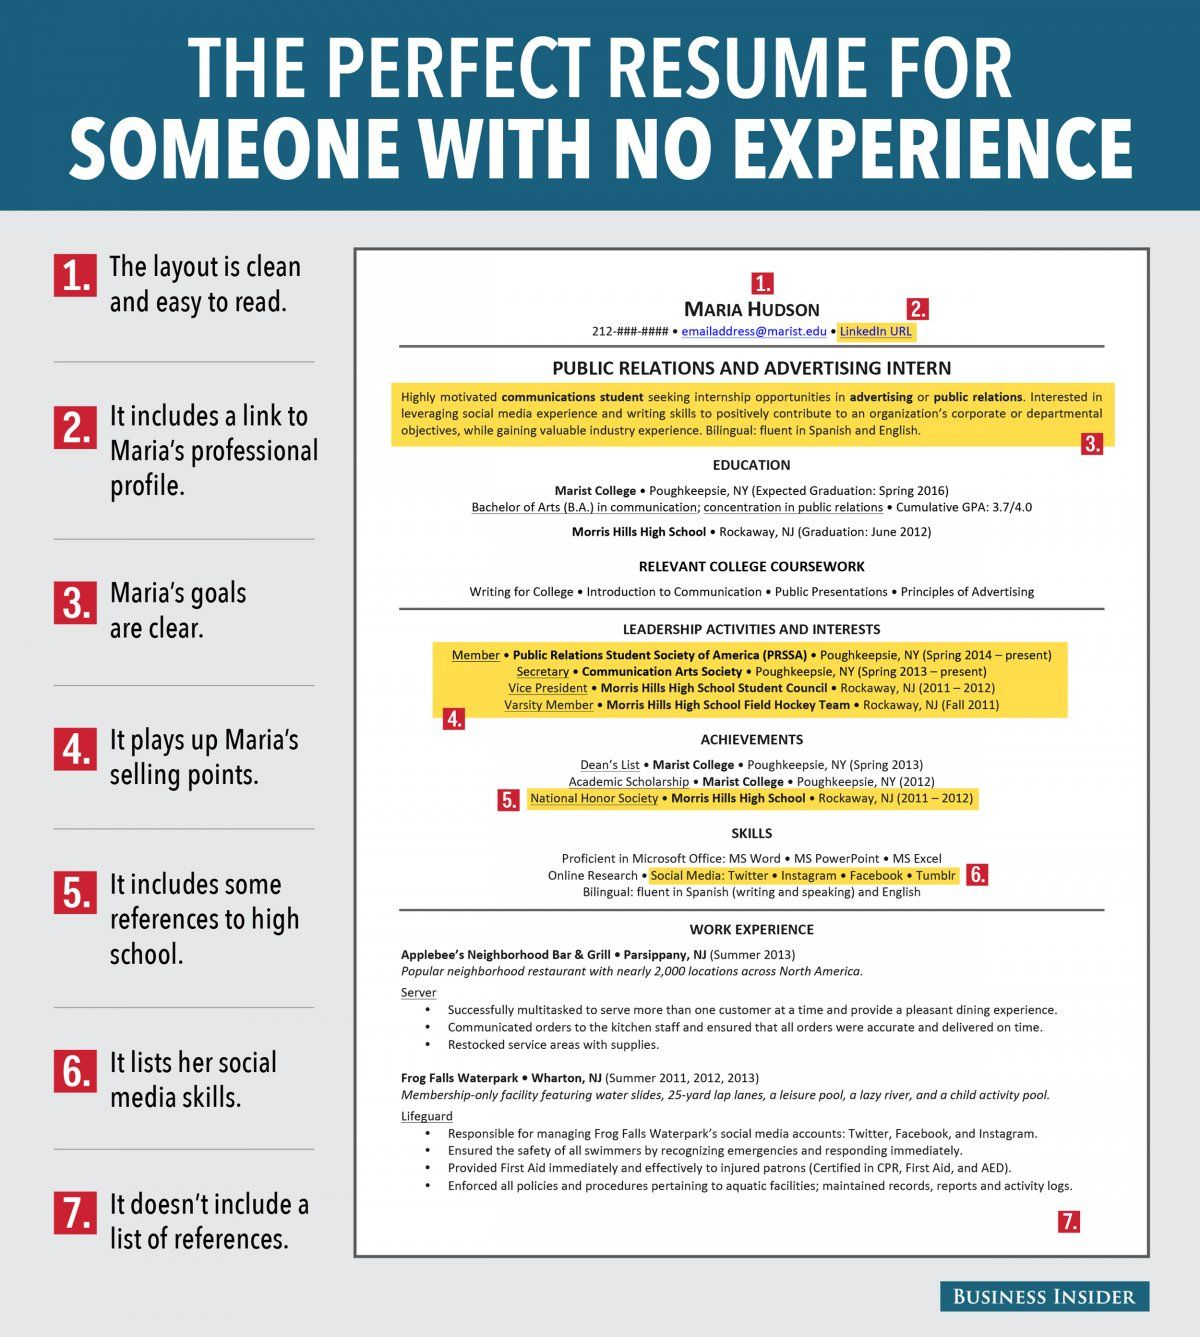 7 Reasons This Is An Excellent Resume For Someone With No Experience Cover Letter For Resume Job Resume No Experience Jobs